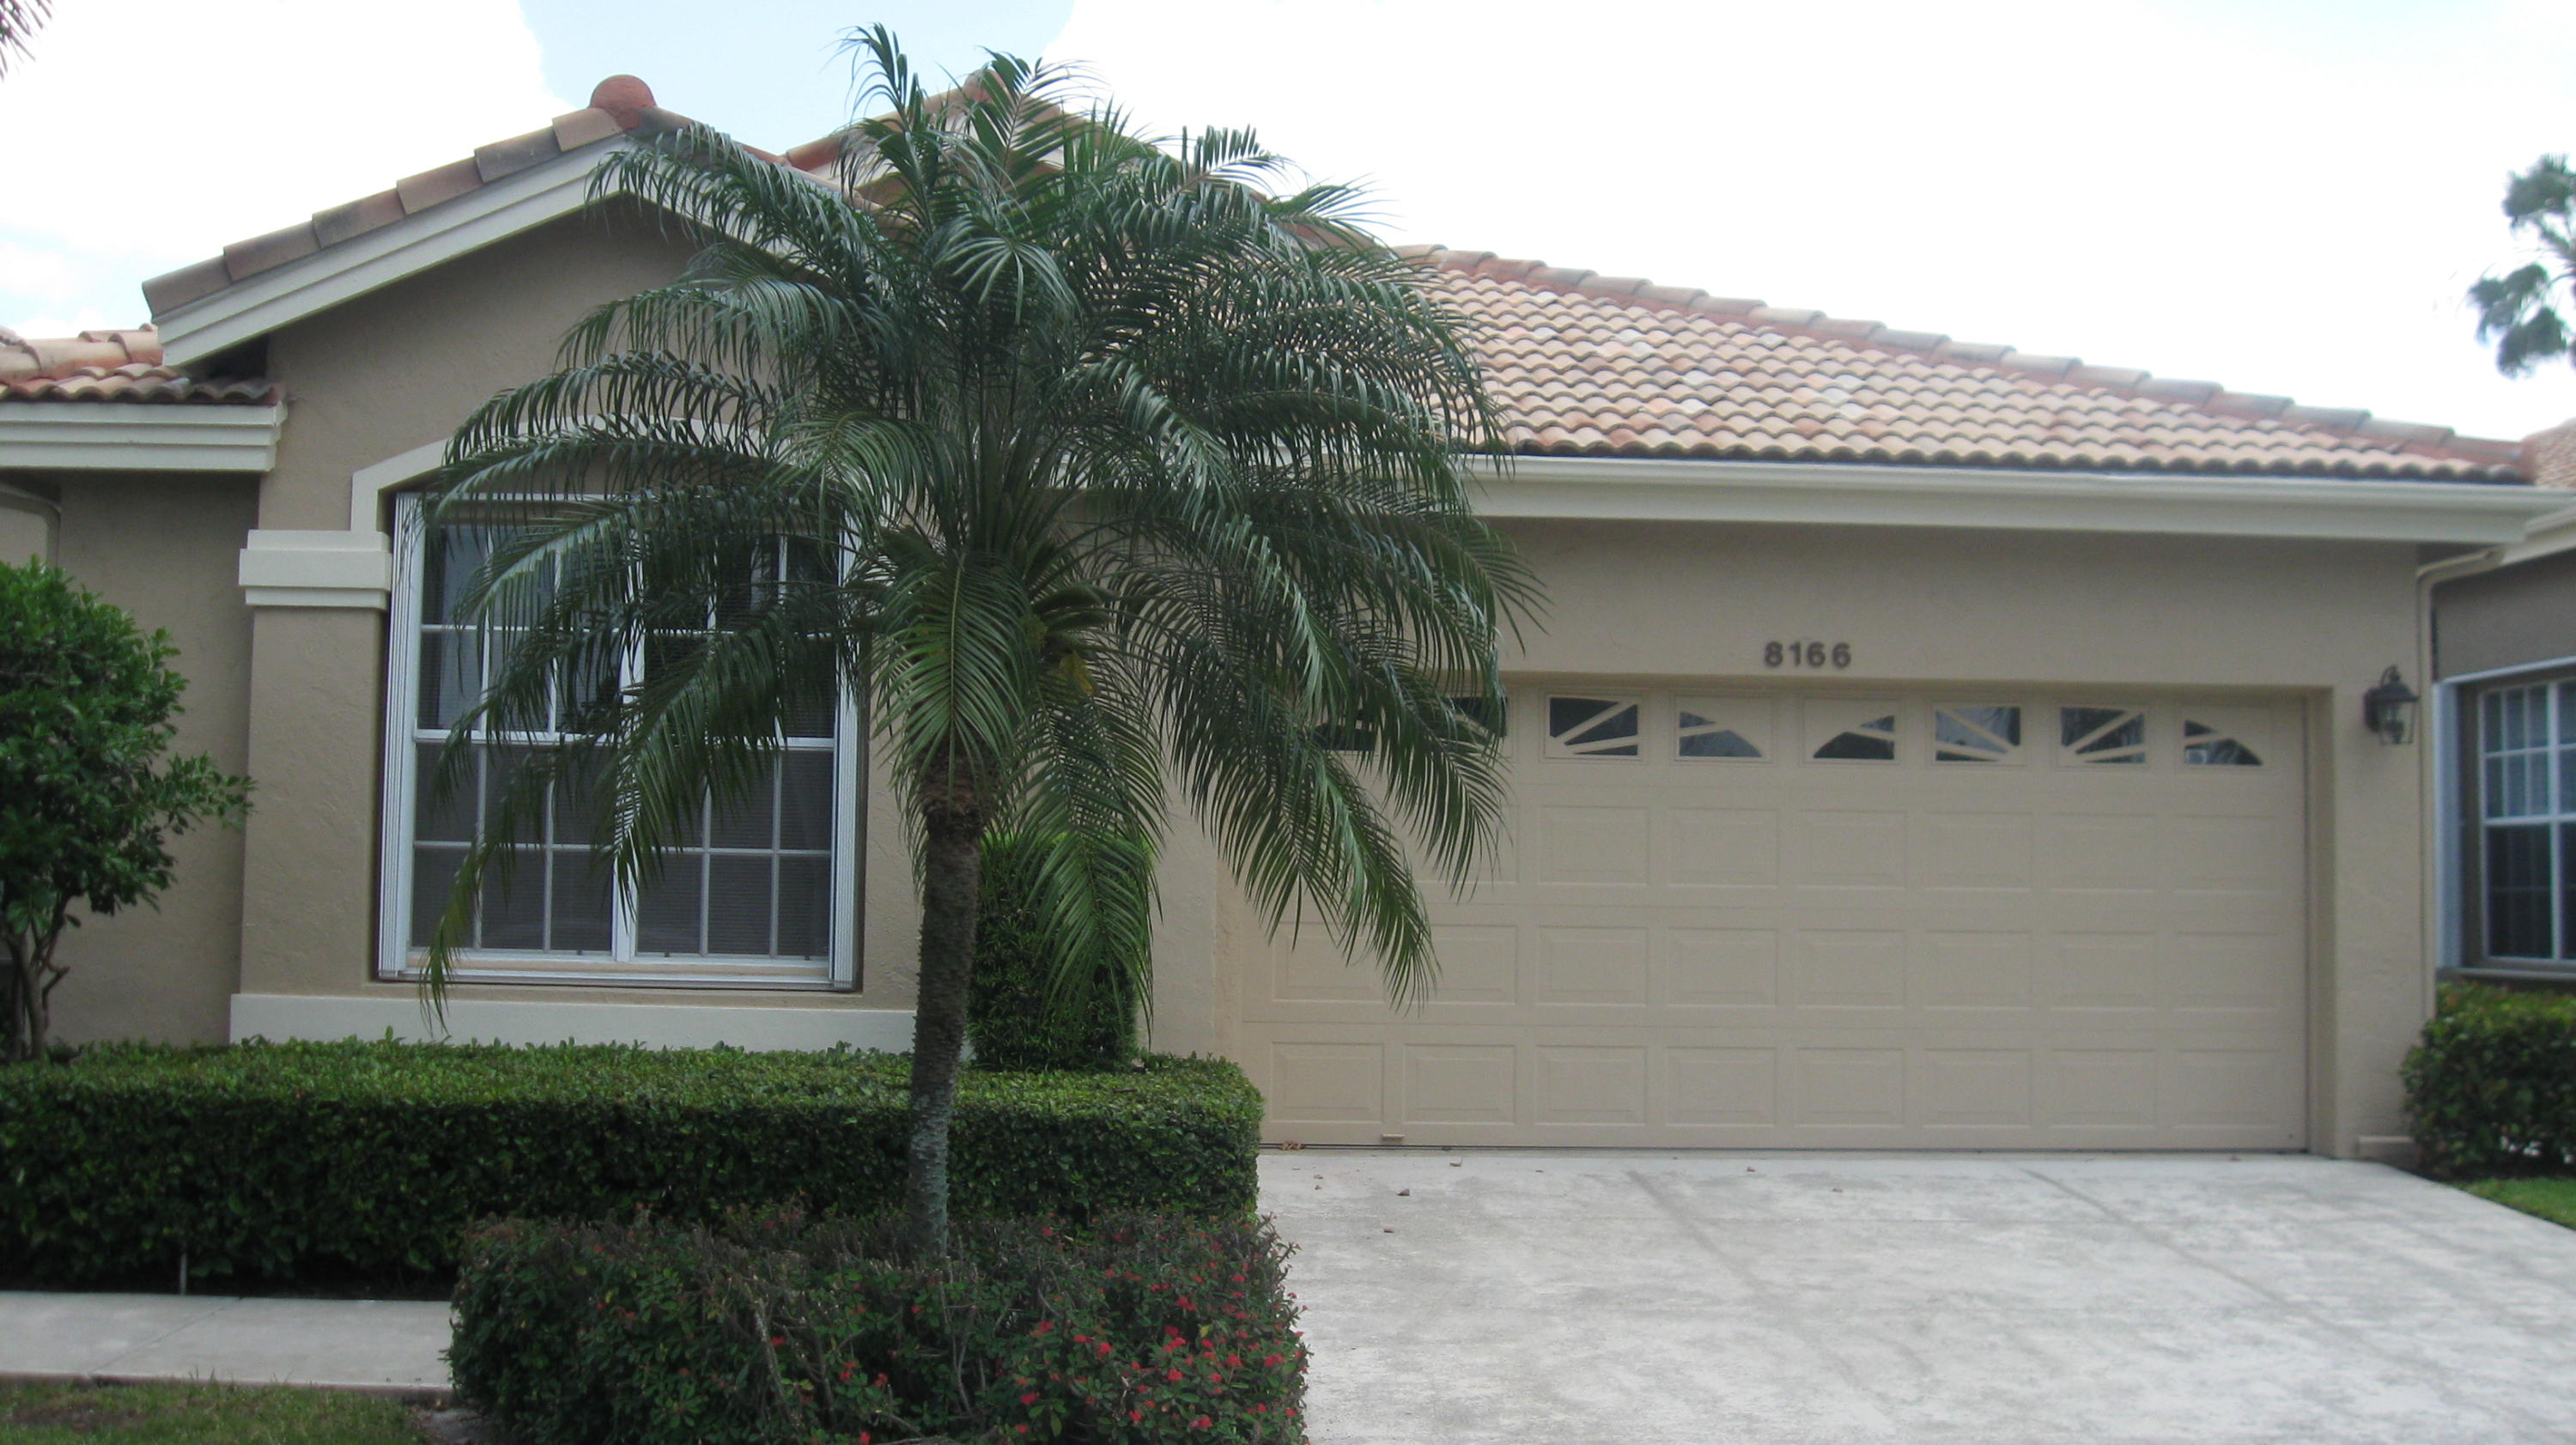 8166 Quail Meadow Trace, West Palm Beach, Florida 33412, 3 Bedrooms Bedrooms, ,2 BathroomsBathrooms,Single Family,For Rent,IBIS,Quail Meadow,1,RX-10522091